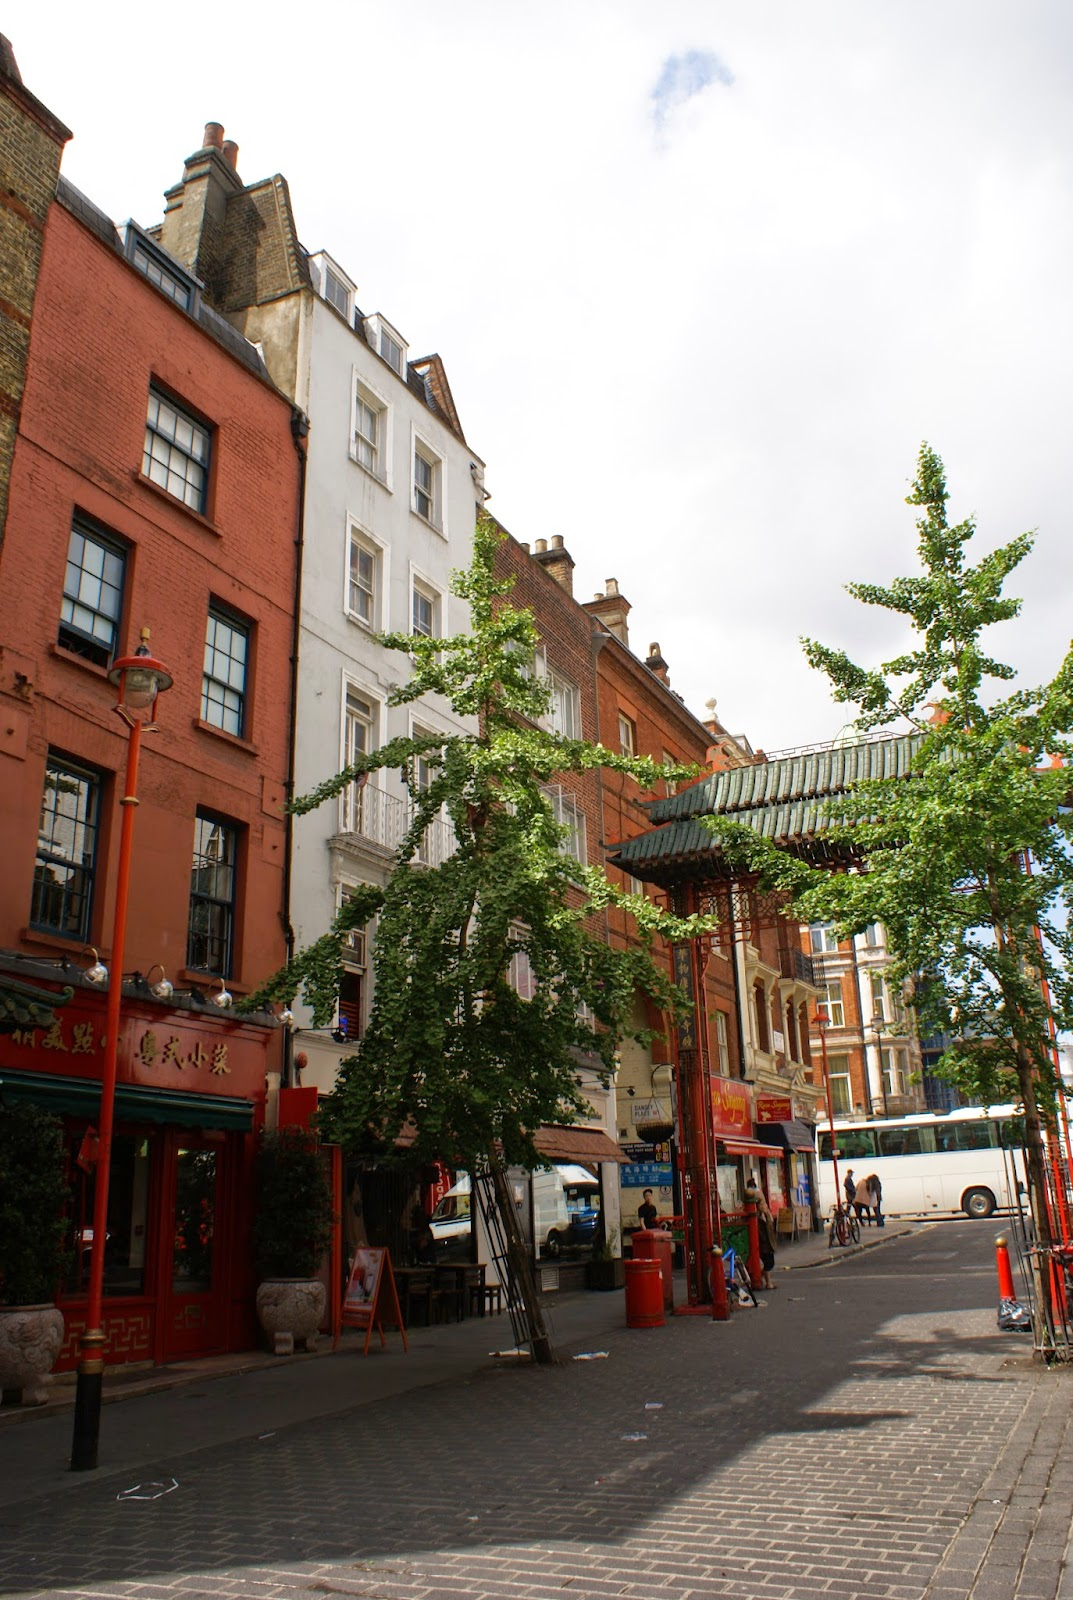 chinatown soho london uk england britain